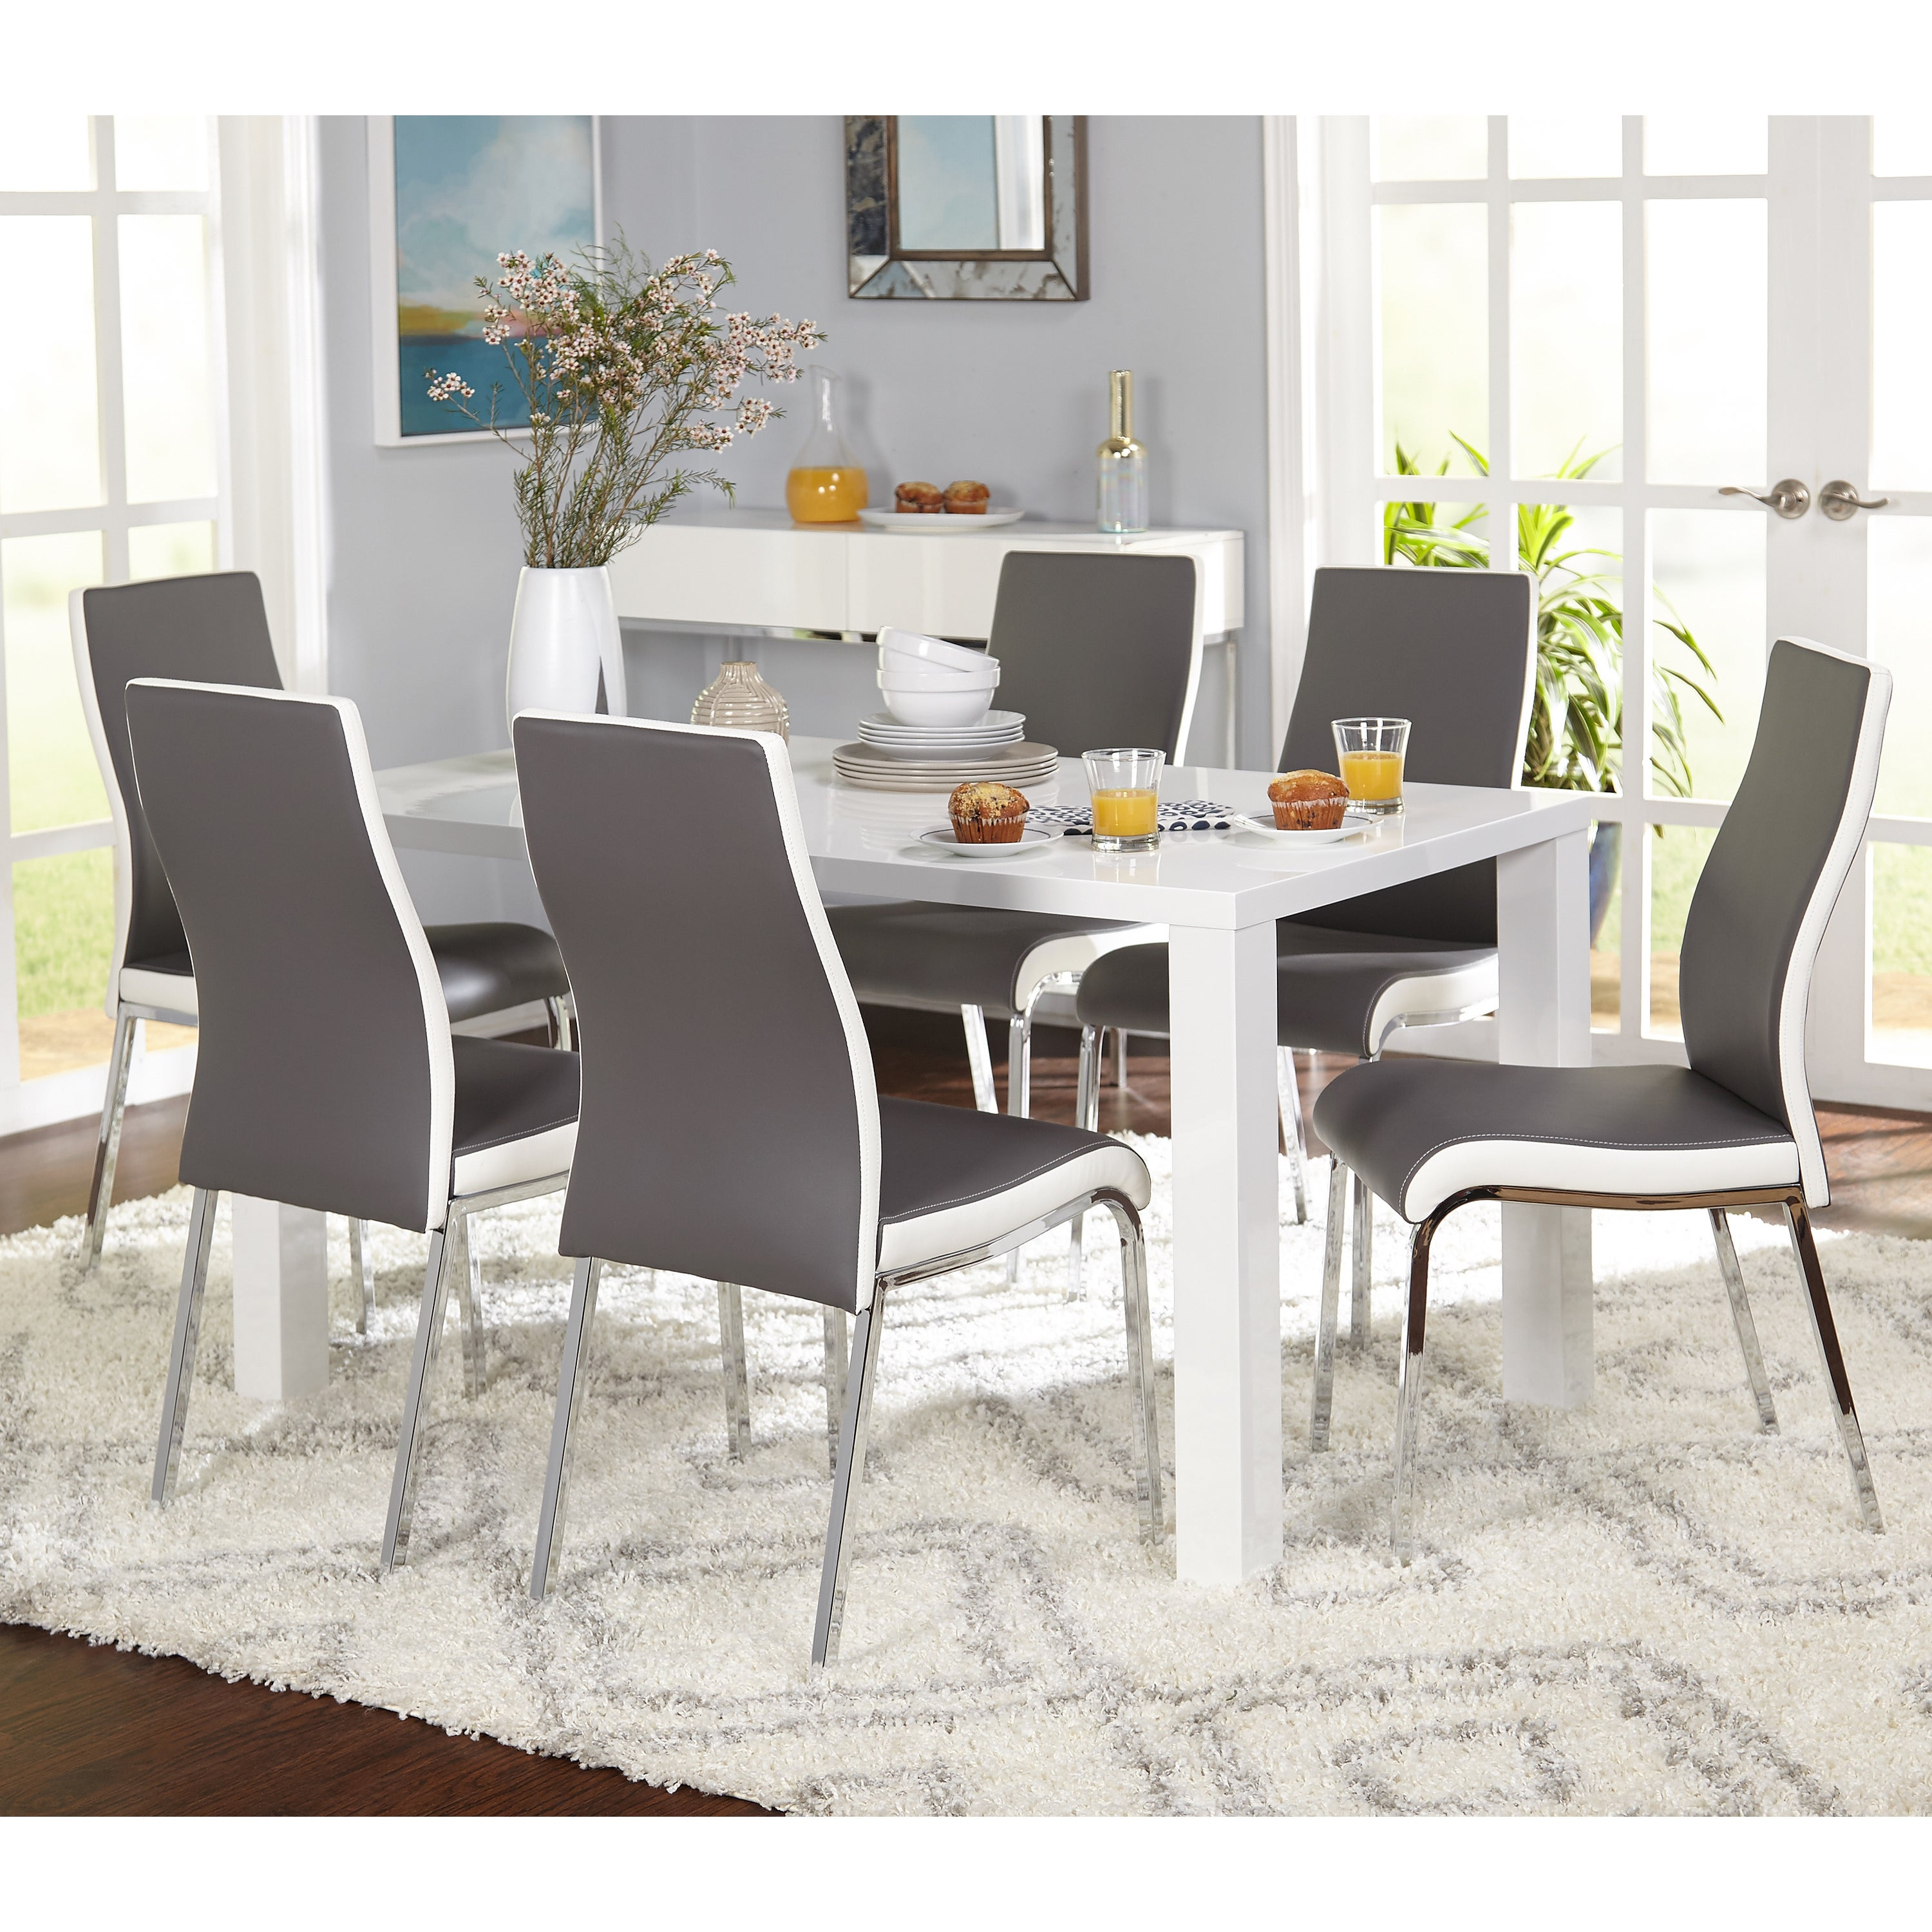 buy simple living kitchen dining room tables online at overstock rh overstock com simple dining room table centerpiece ideas simple dining room table